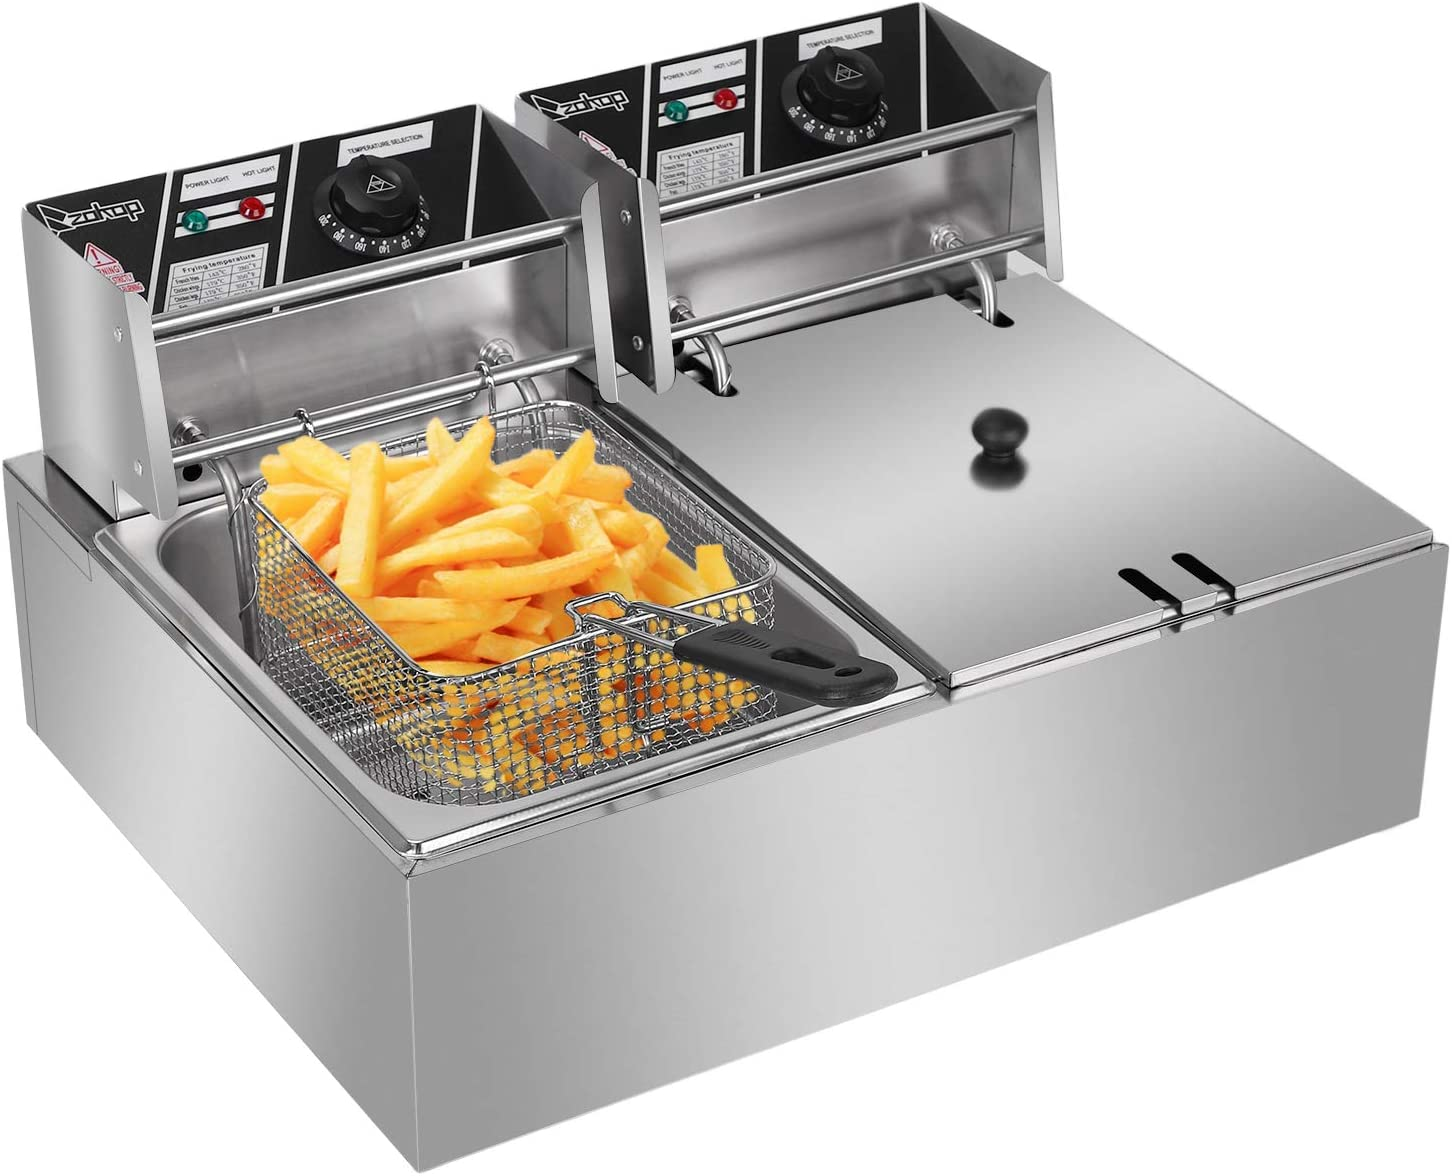 6L Deep Fat Fryer, Deep Fryer Stainless Steel Single Cylinder Electric Fryer is Durable for Both Home and Commercial use 220-240V UK Plug (2500W/6L) 5000w/12l